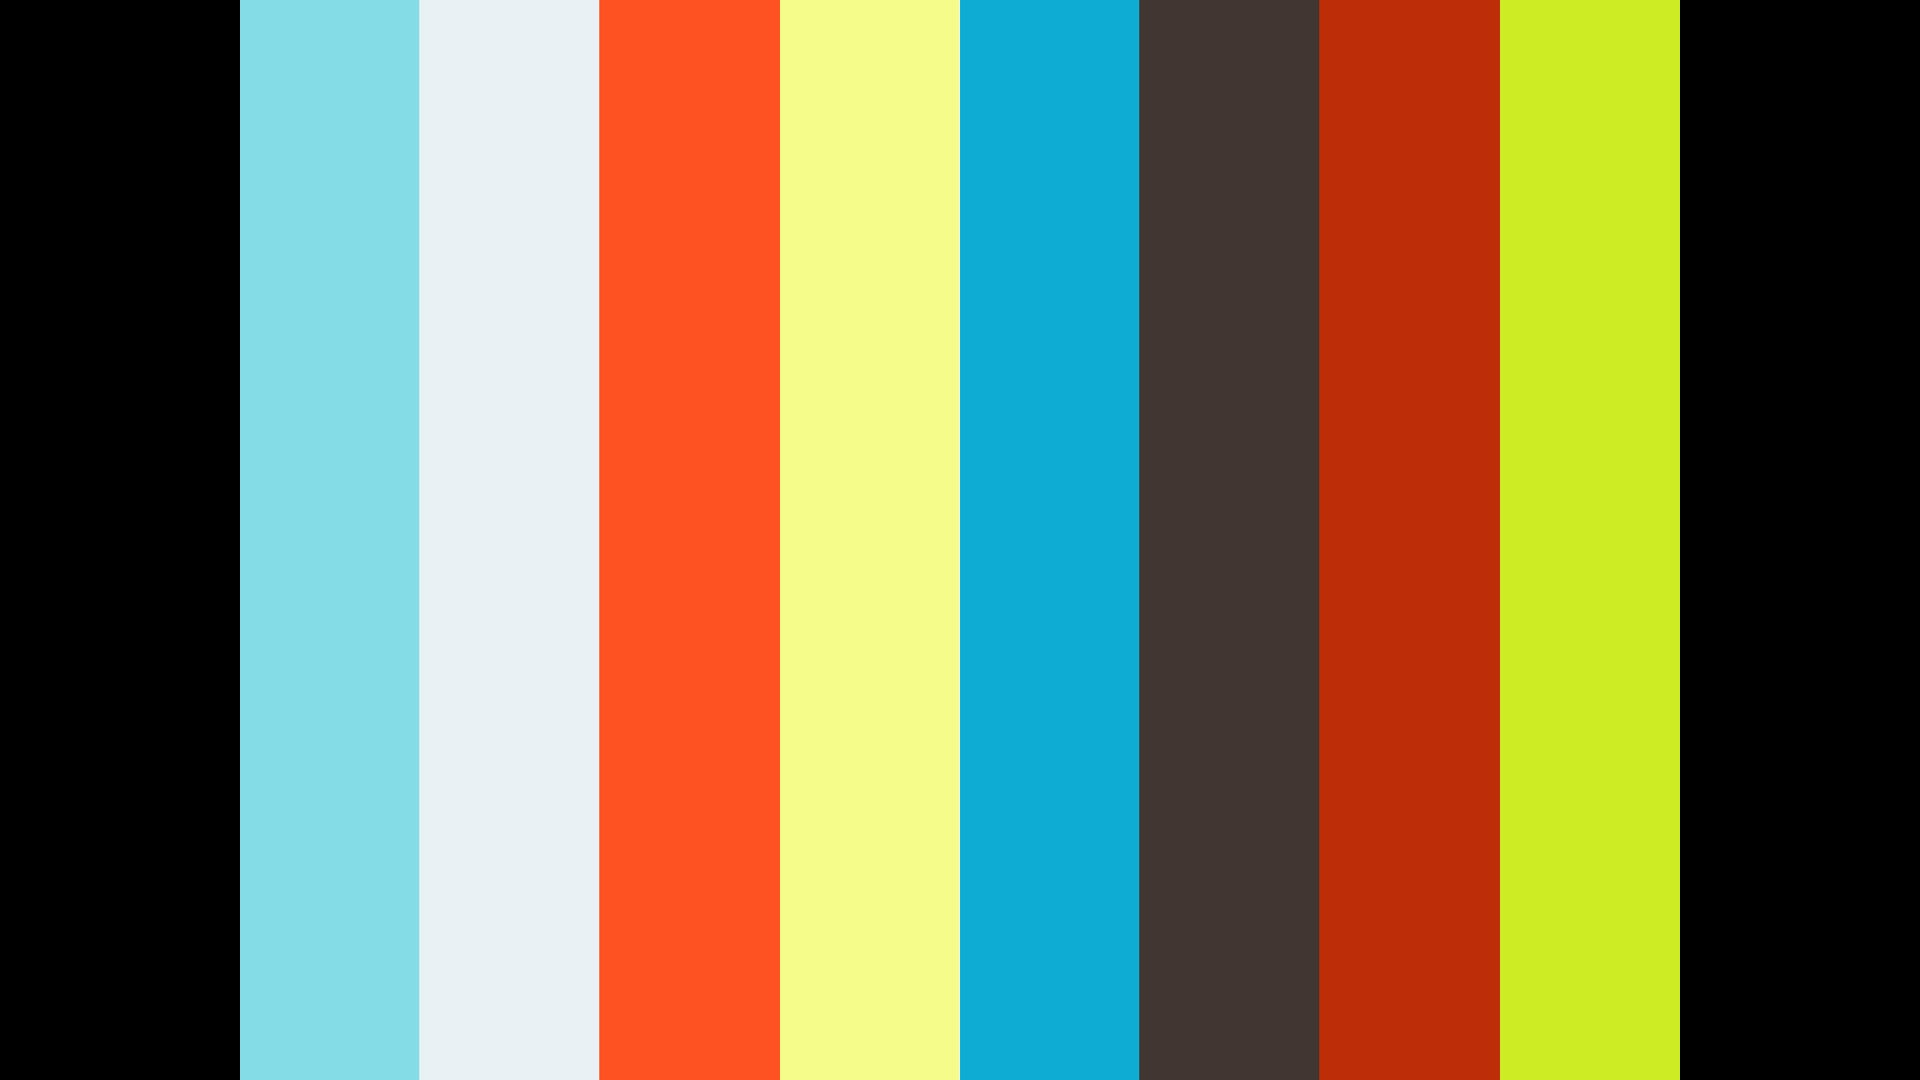 Rectal Cancer Resection With Pathologic Upstaging: Adjuvant Radiation Versus Observation 2017